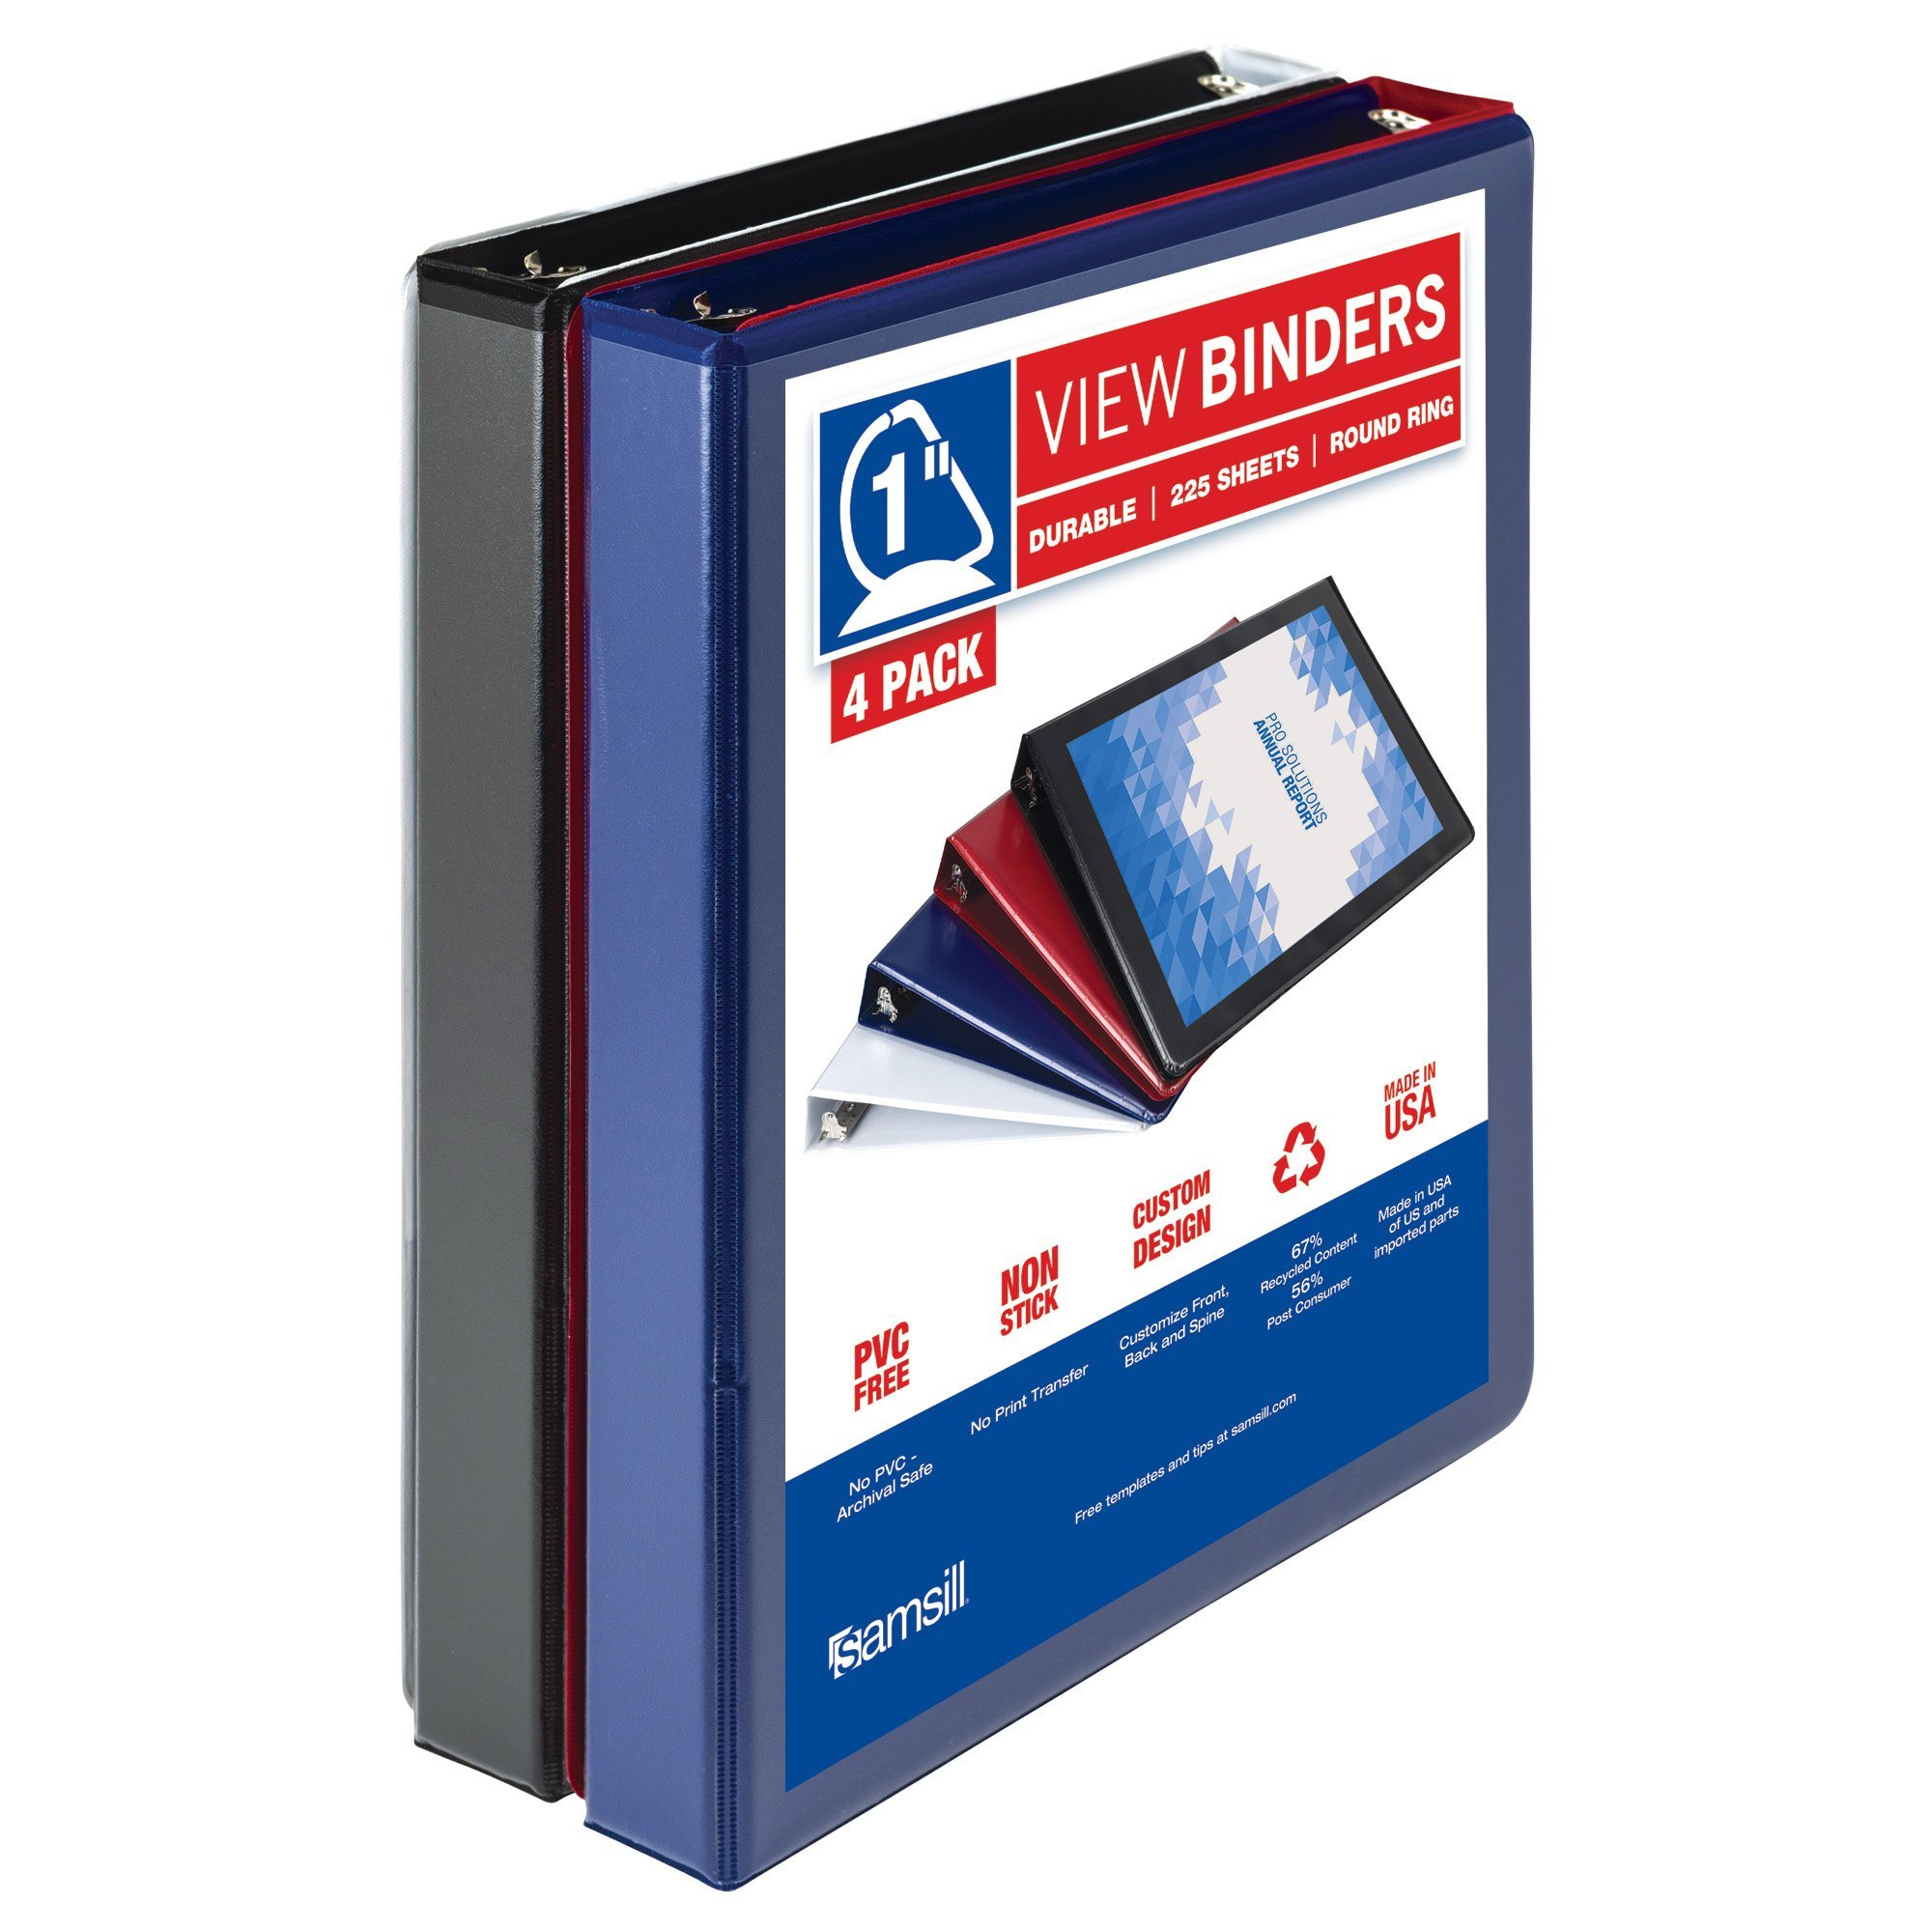 Samsill Durable 3 Ring View Binders, 1 inch D-Ring - Holds 250 Sheets, PVC-Free/Non-Stick Customizable Cover, Black, White, Blue, Red, 4 Pack by Samsill